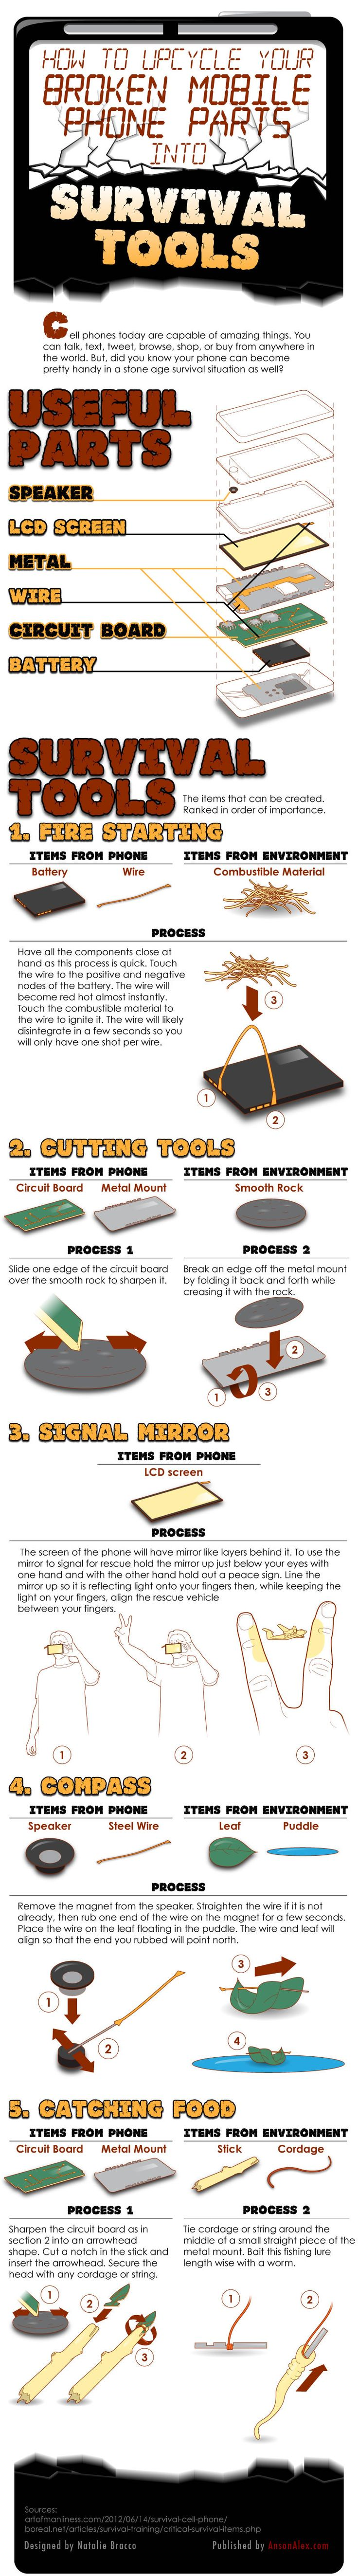 How to Use Your Phone for Survival Tools  #AlwaysPrepared